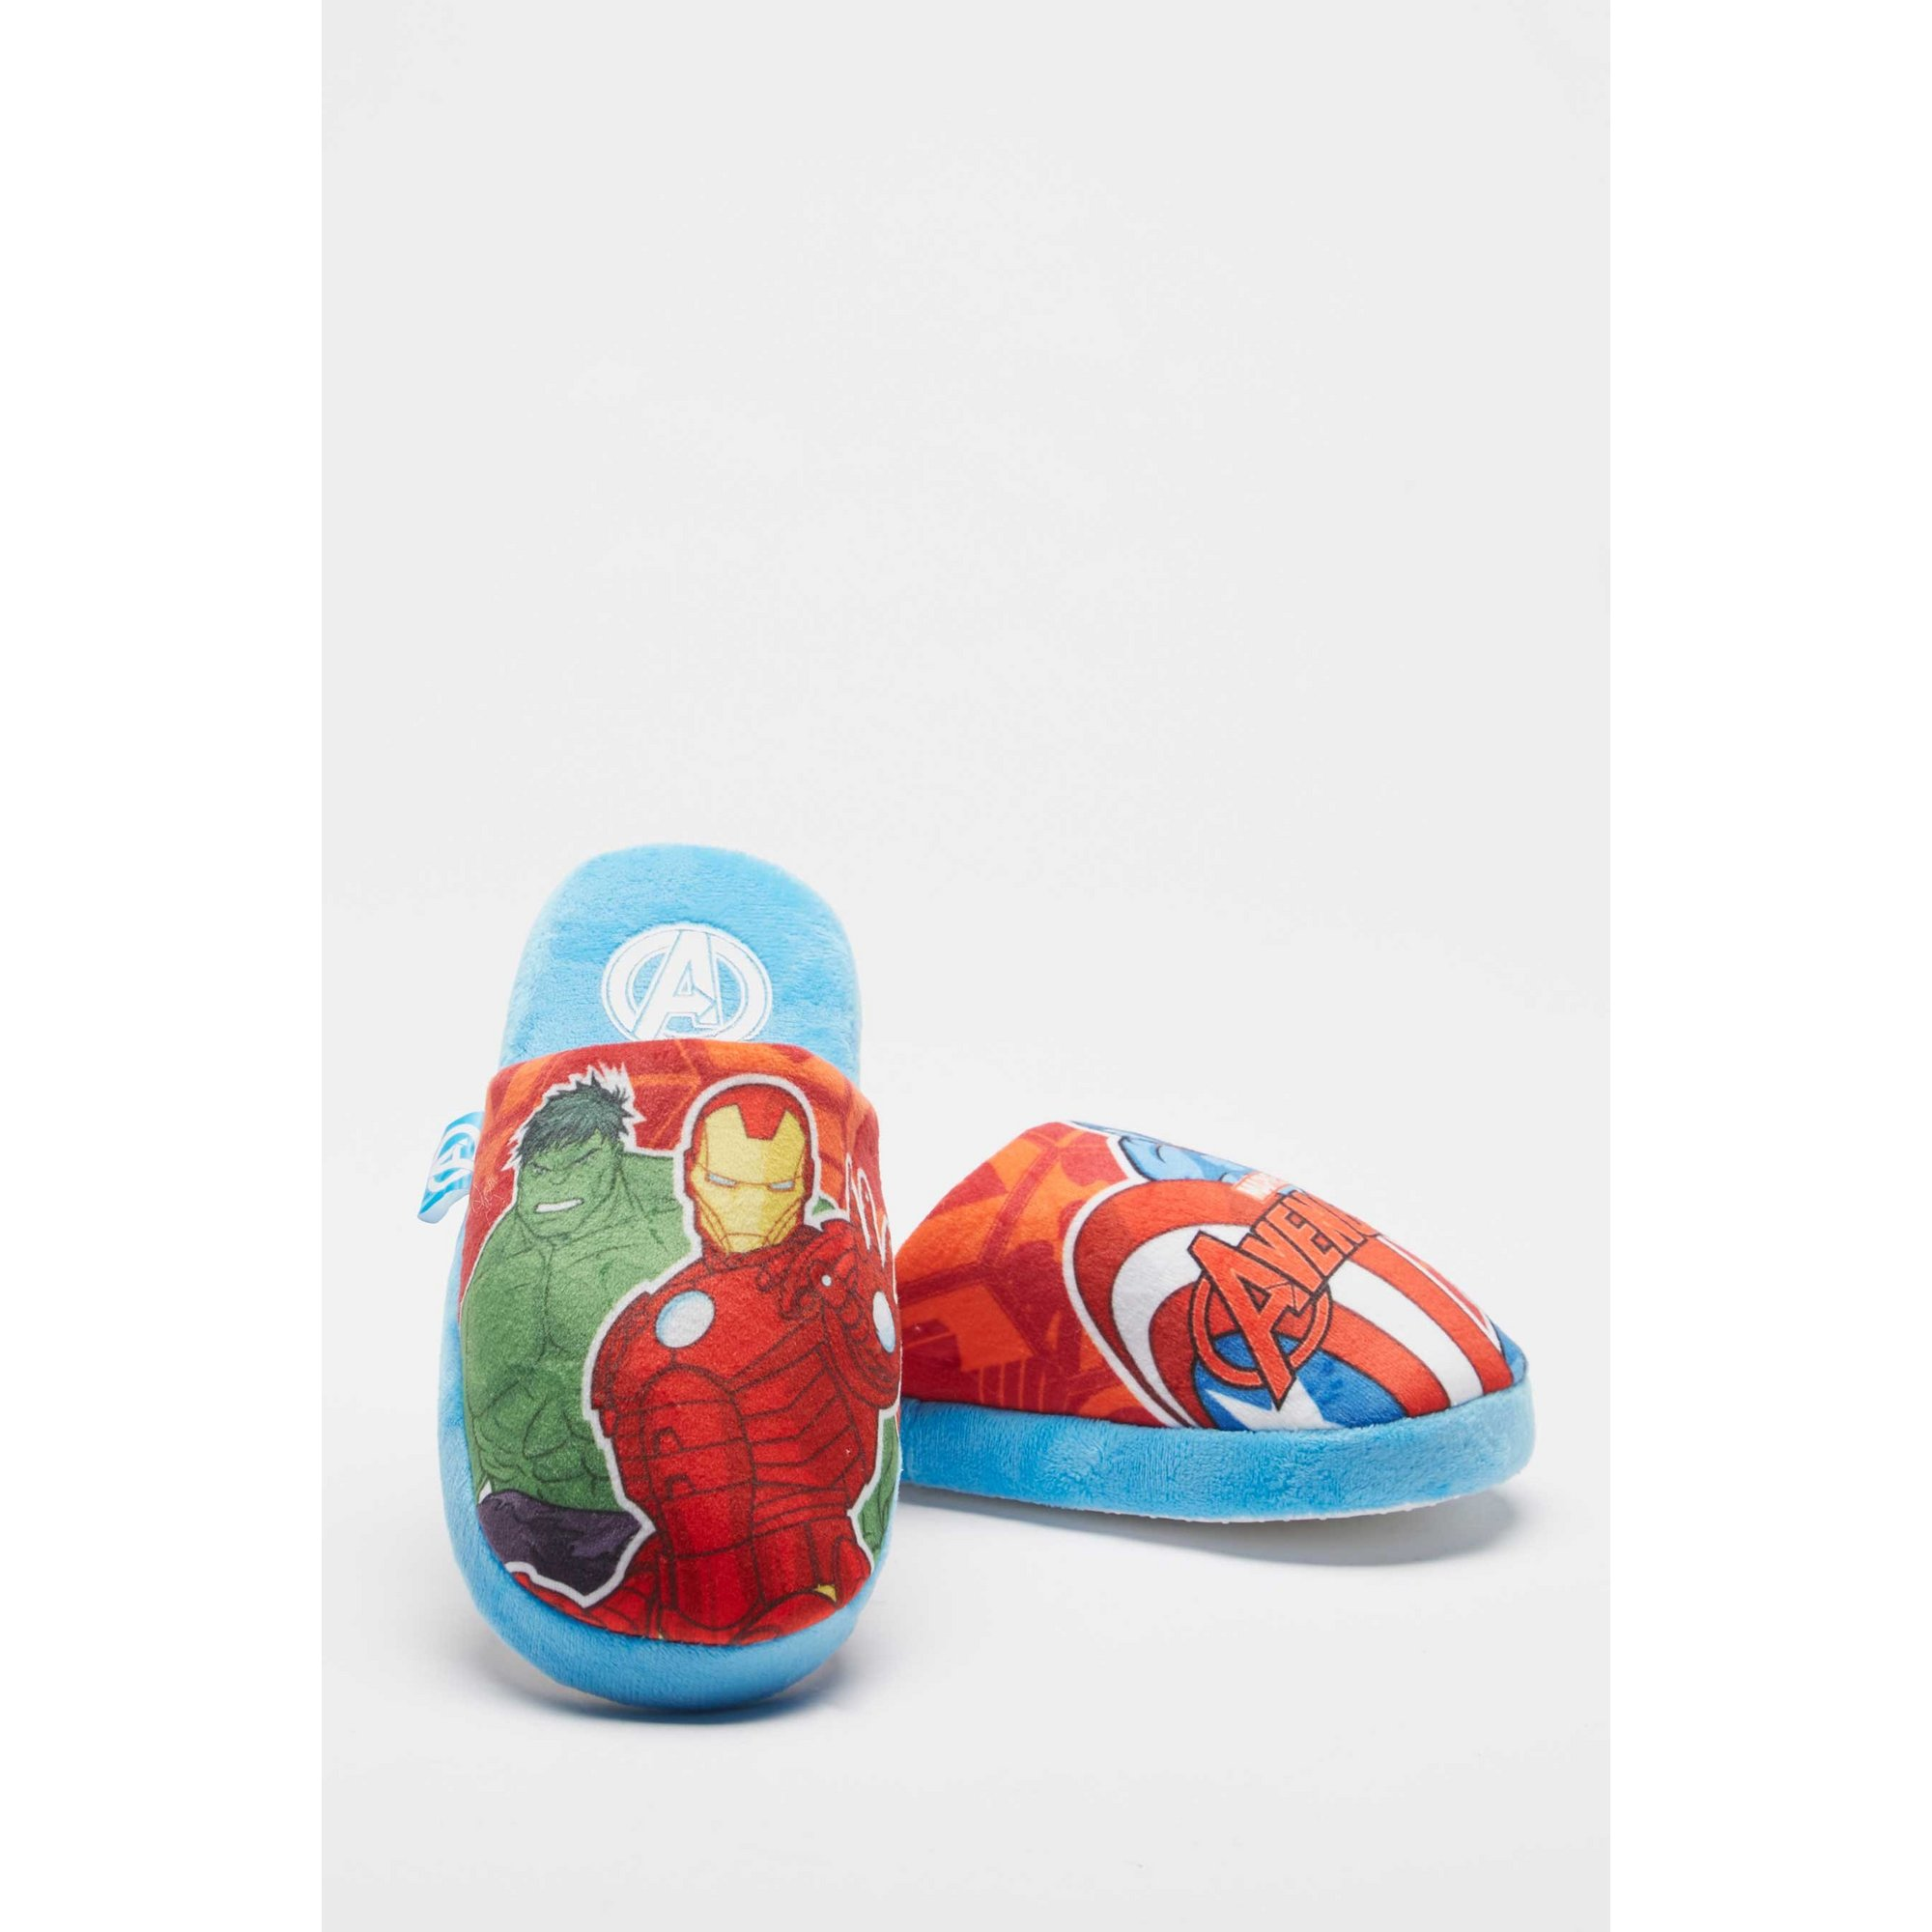 Image of Avengers Blue Mule Slippers